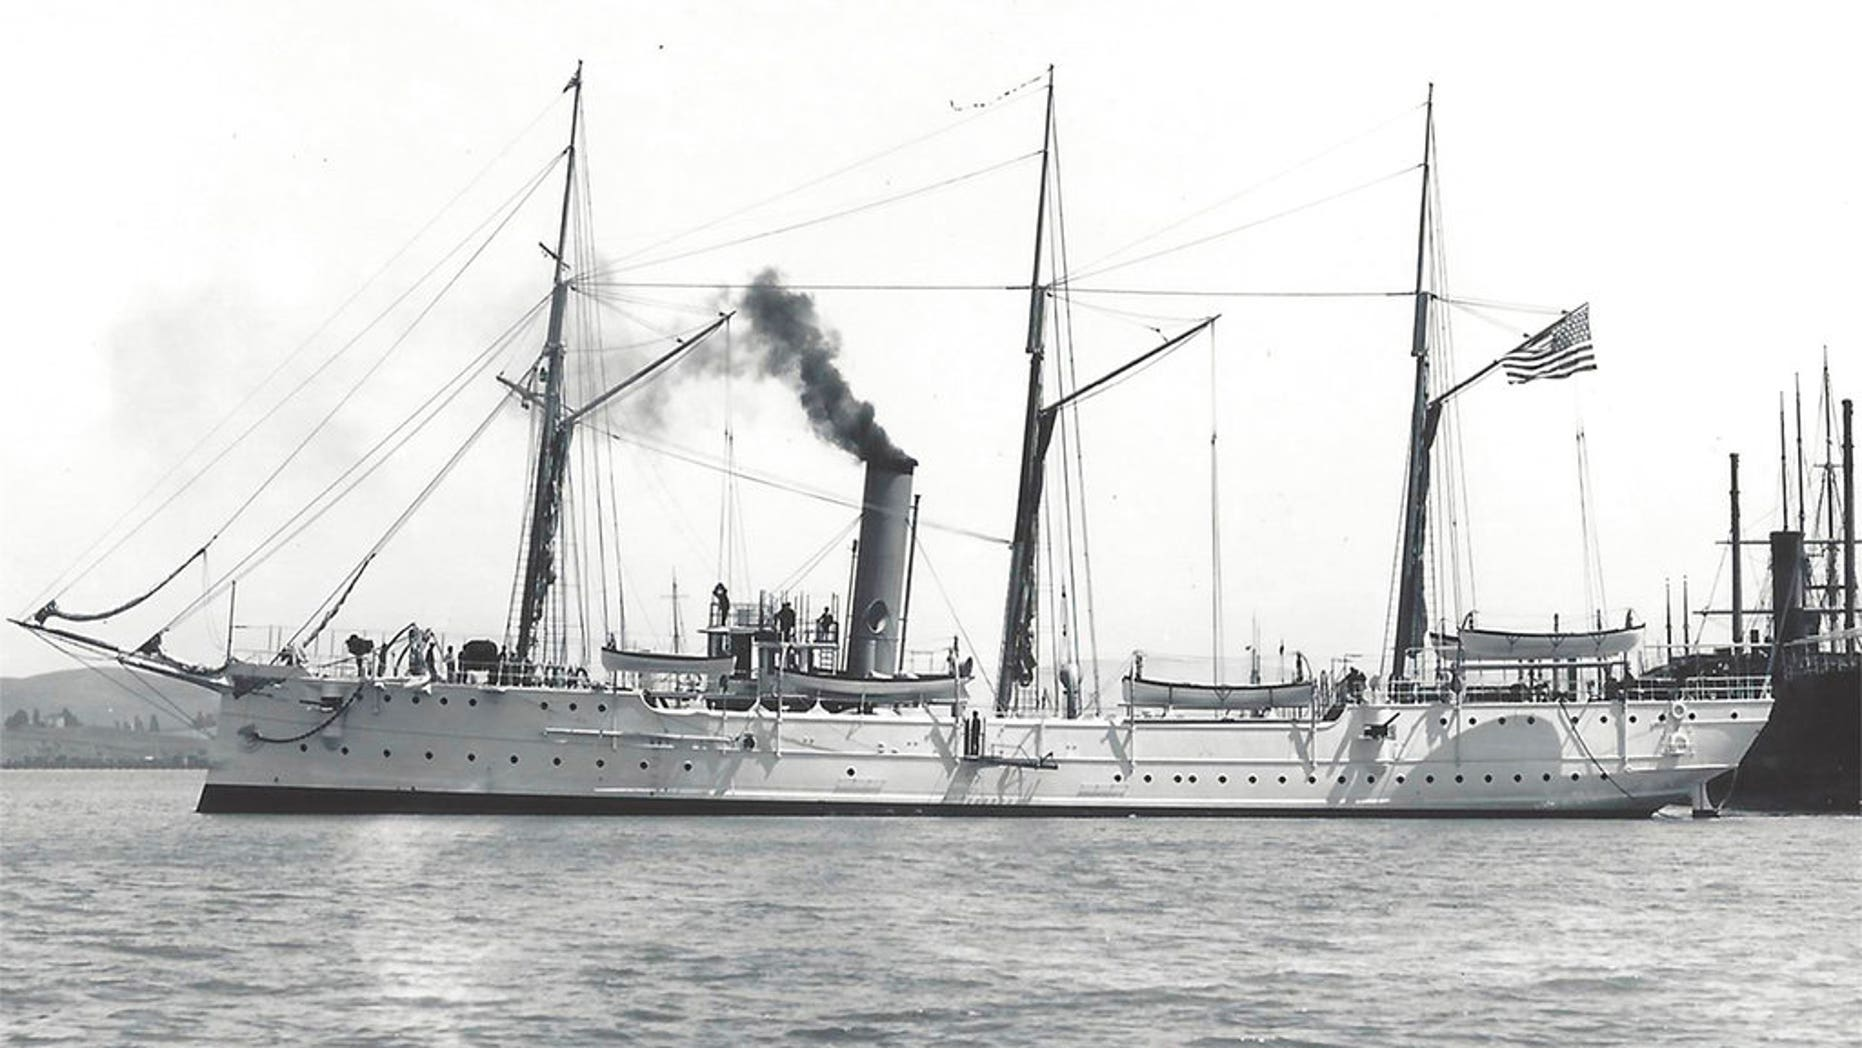 USCGC Cutter McCulloch was launched in 1896 and set out to sea during the Spanish-American War.